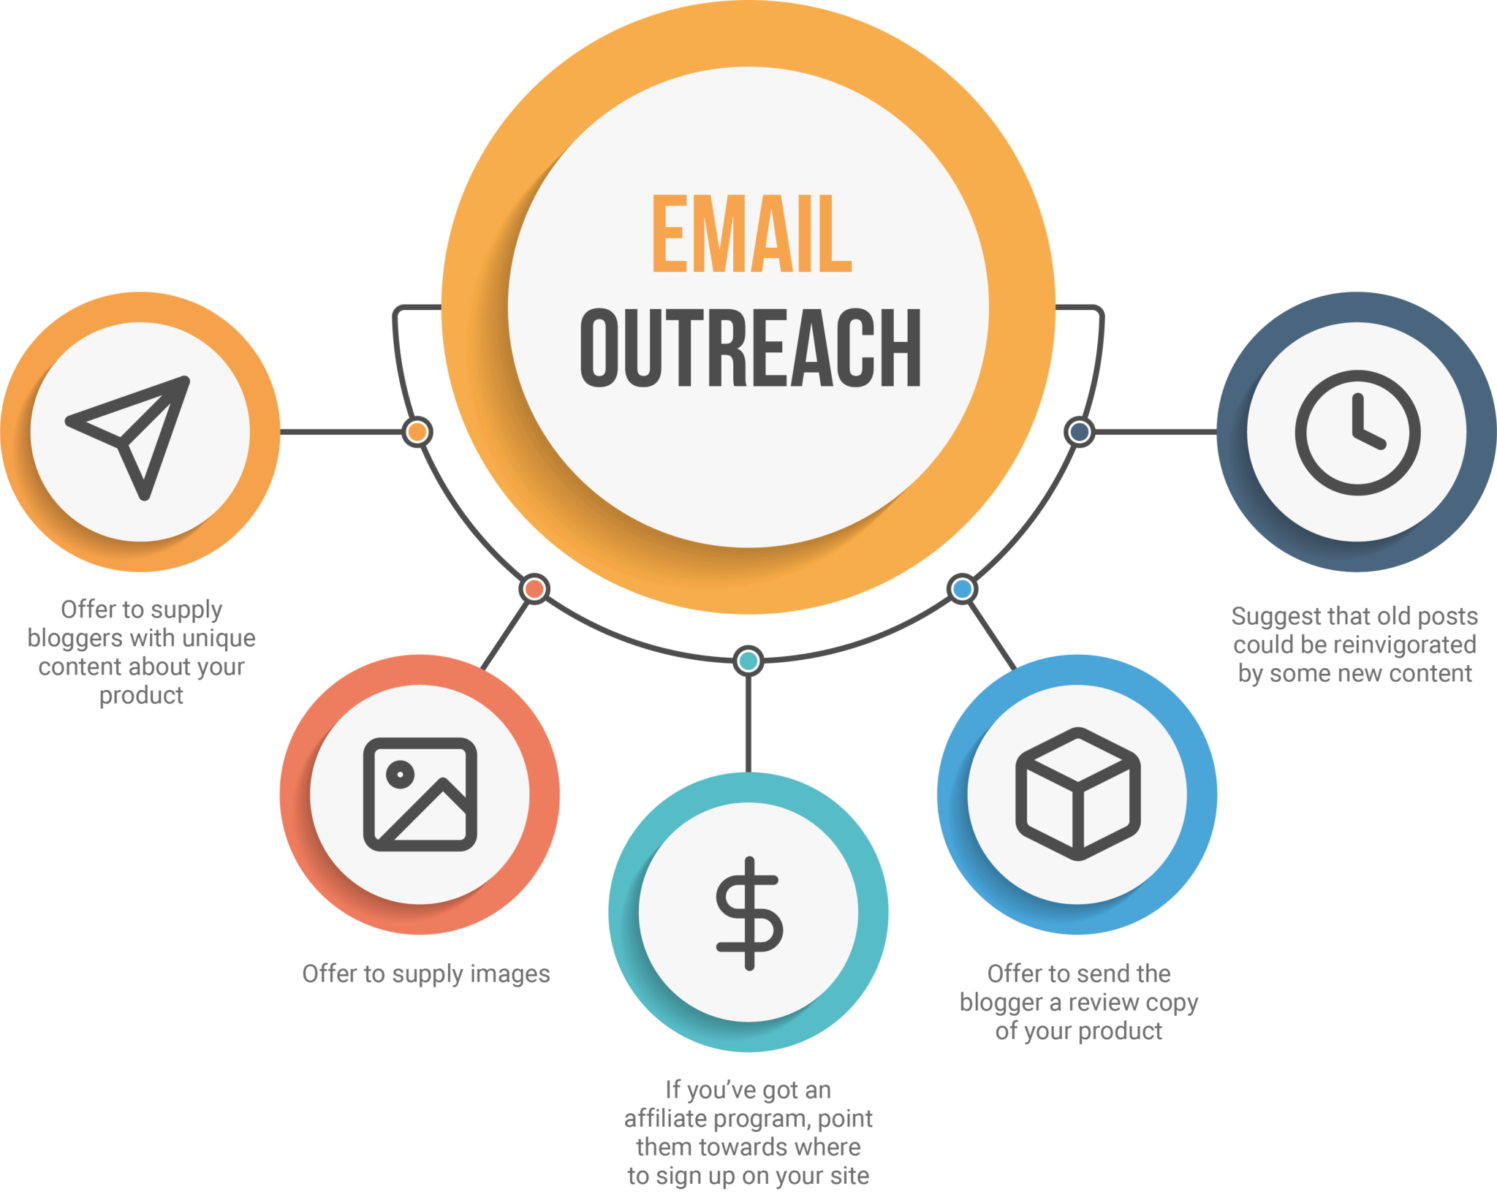 Email outreach infographic